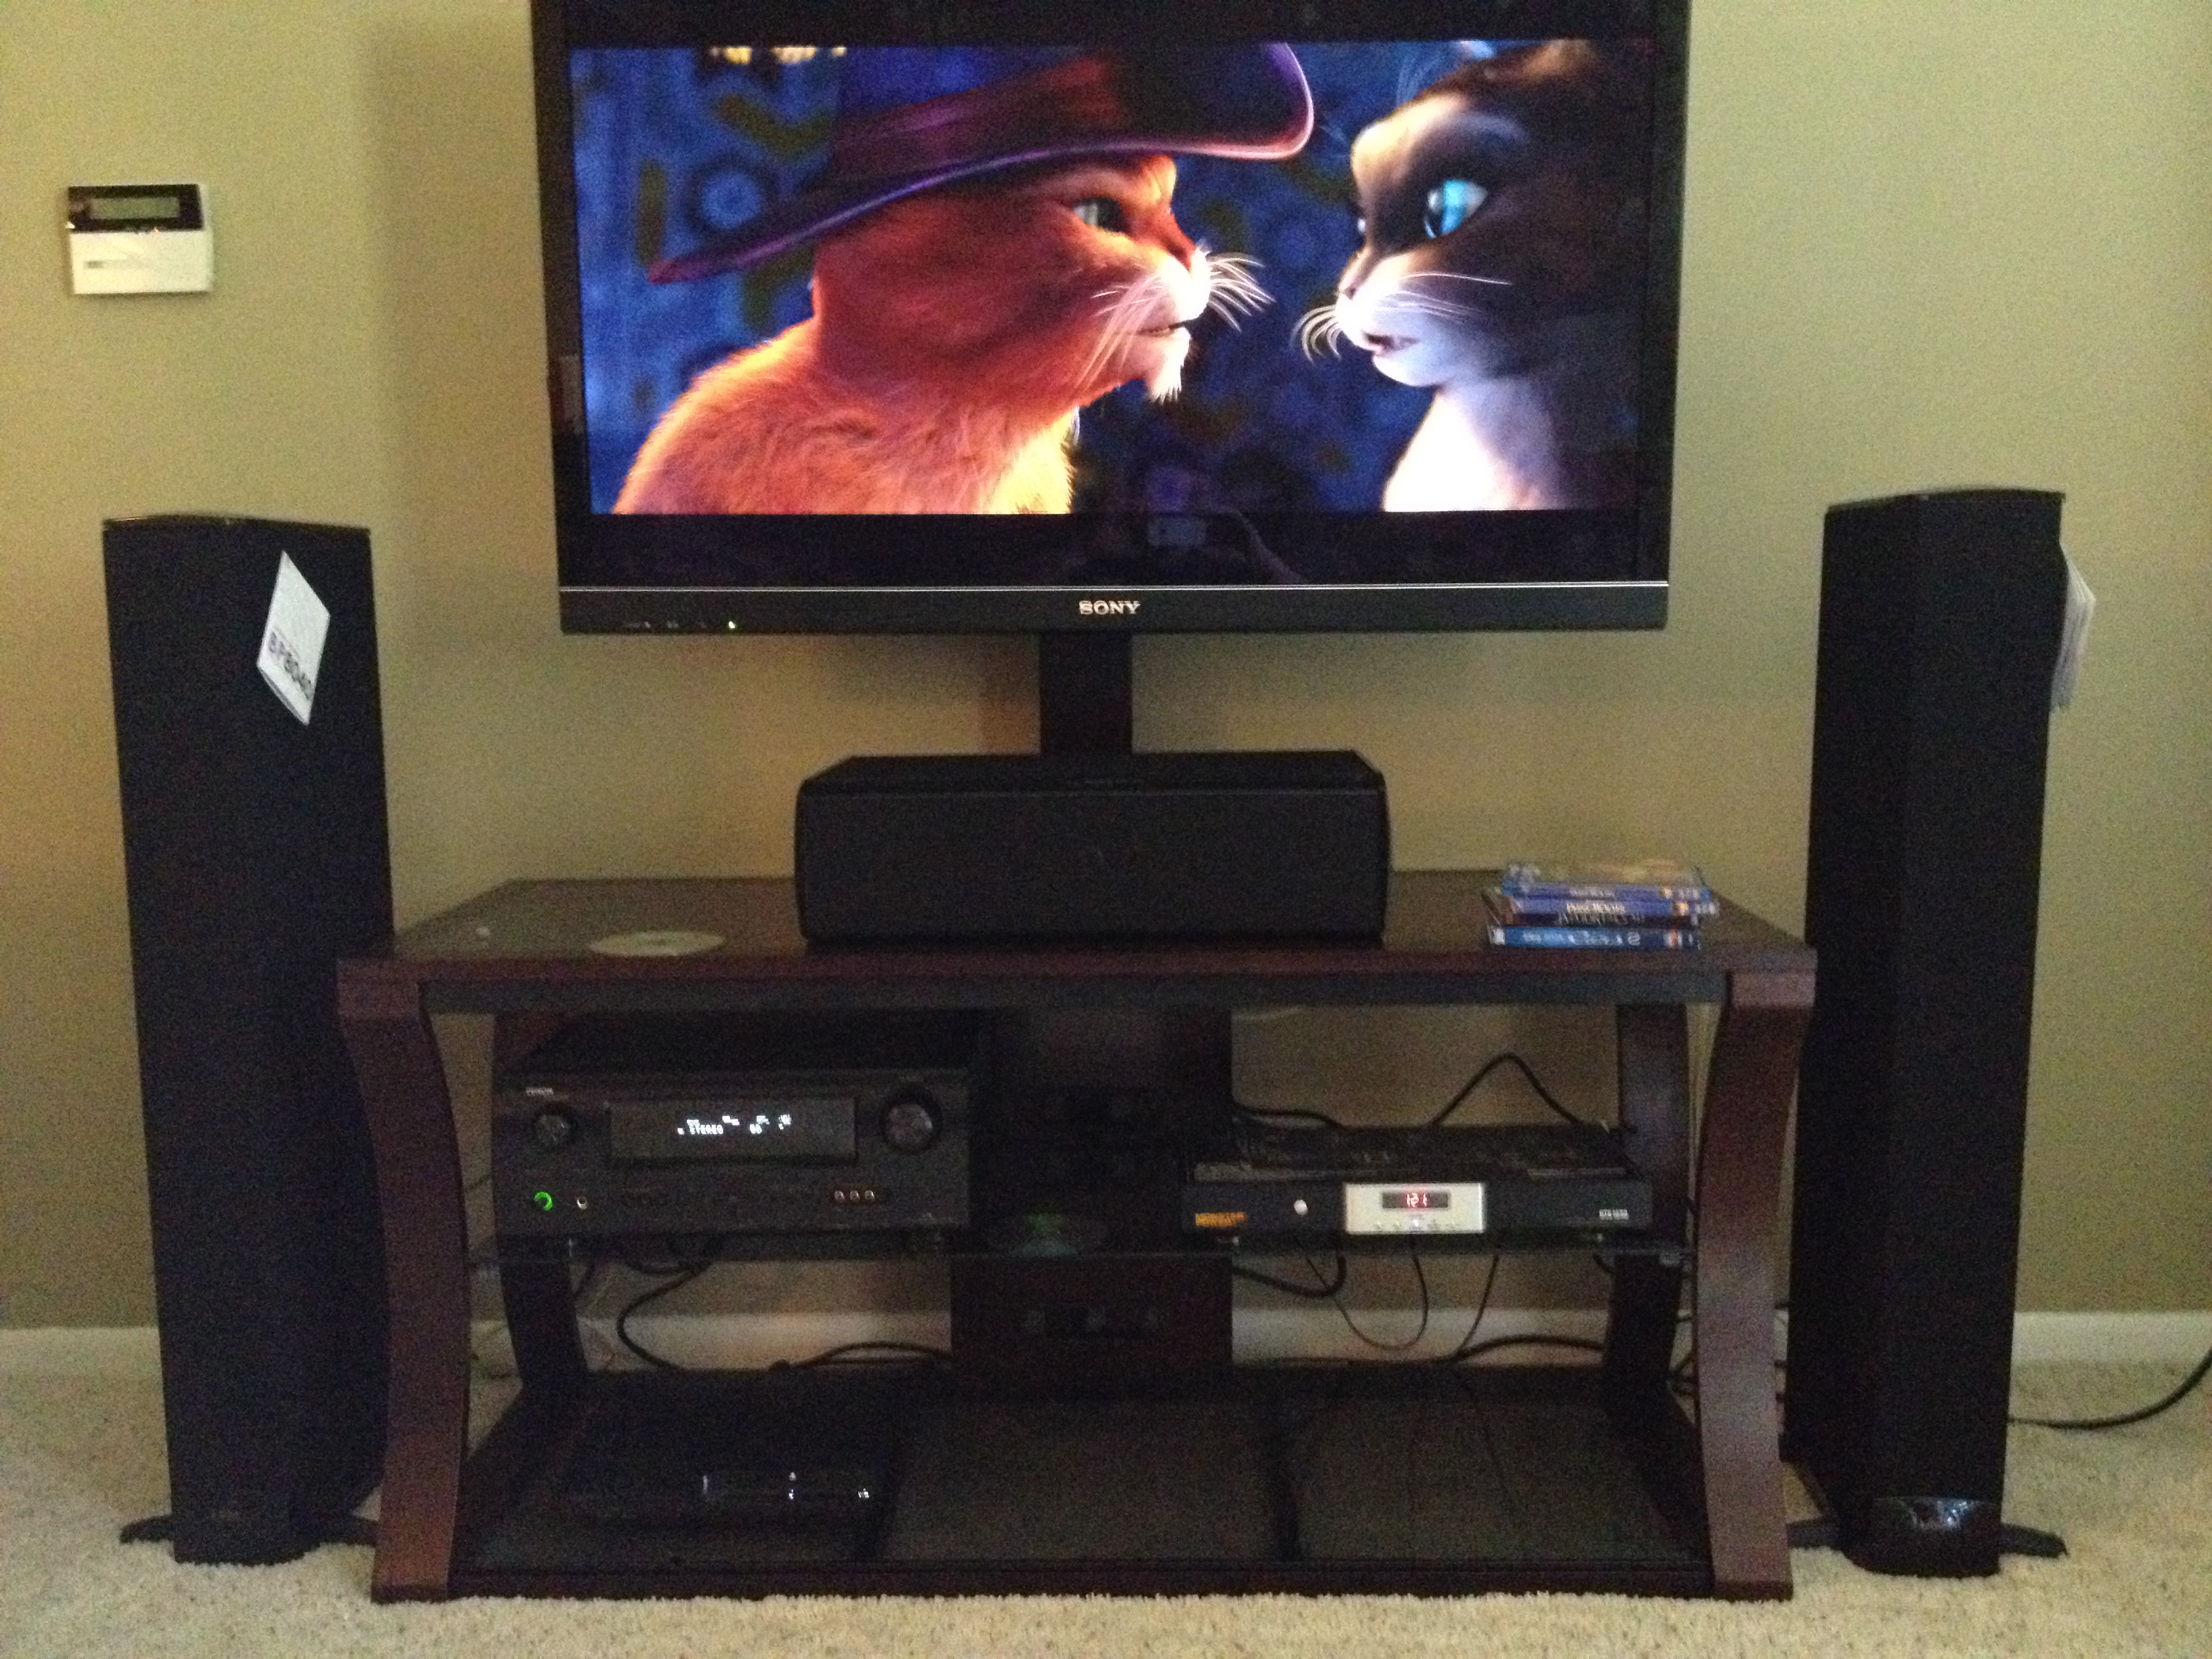 b/b4/b4d12619_HomeTheater.jpeg